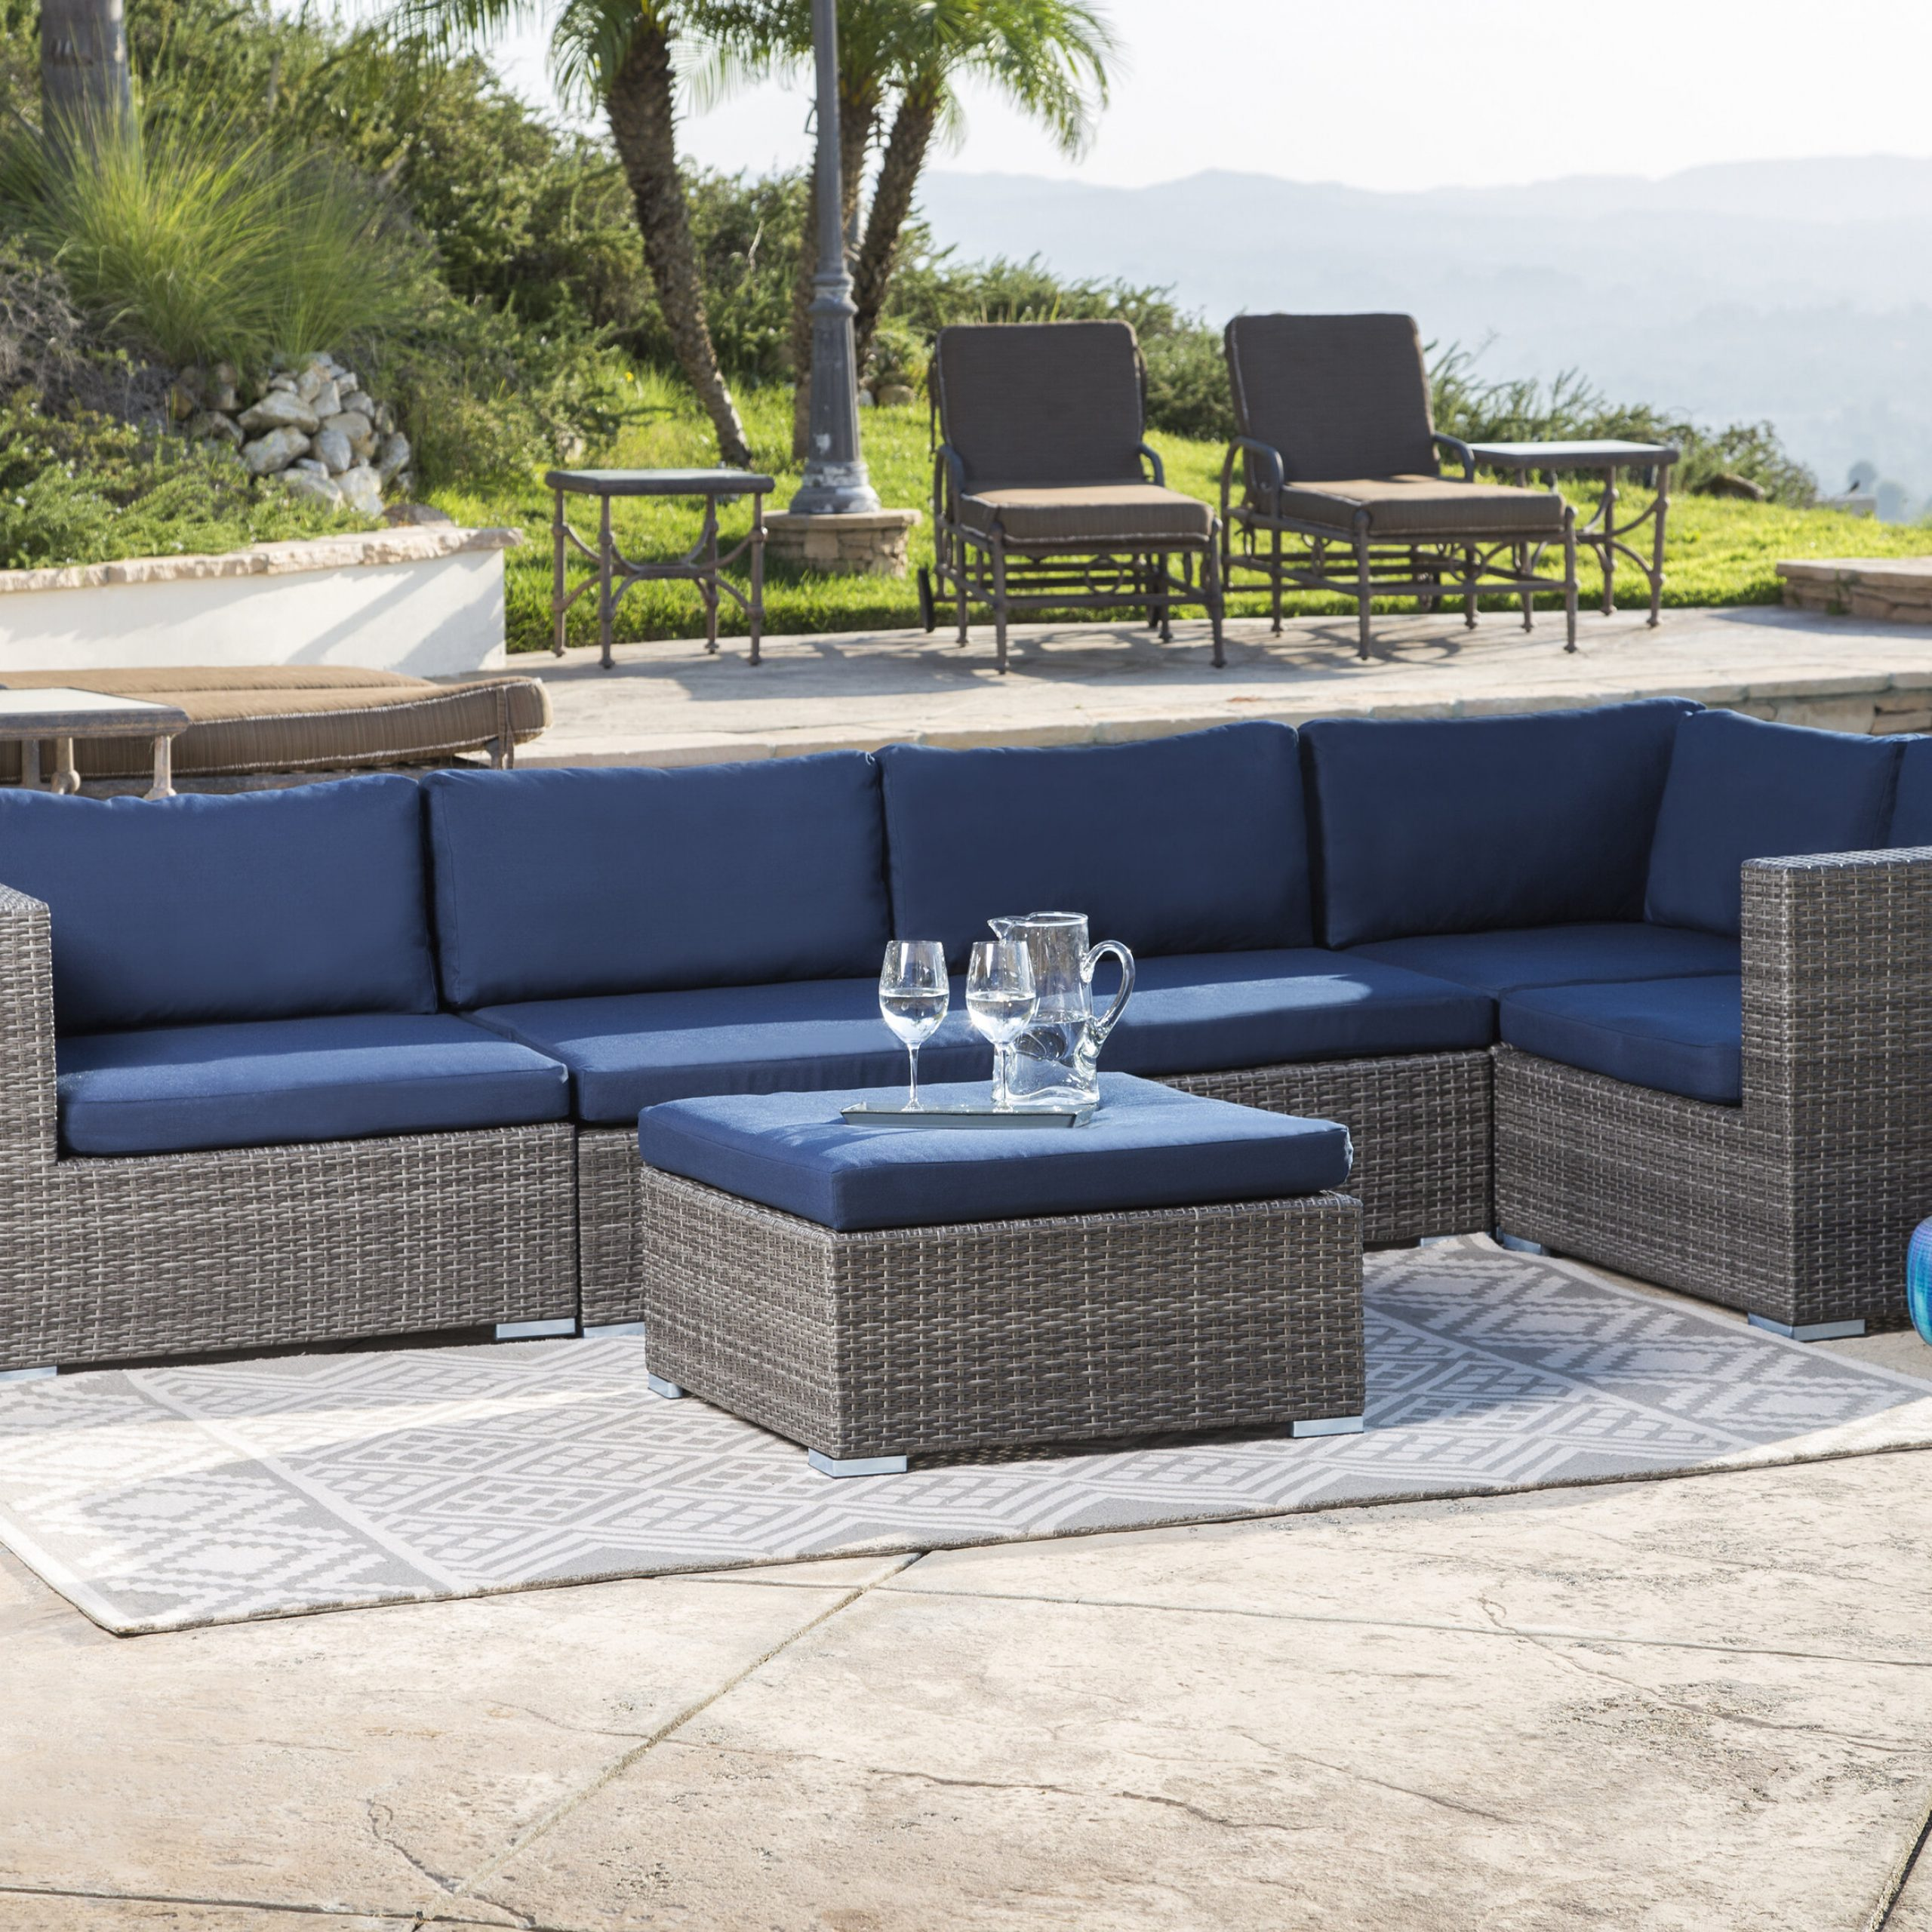 Ostrowski Patio Sectional With Cushions In Best And Newest Eldora Patio Sectionals With Cushions (View 5 of 25)